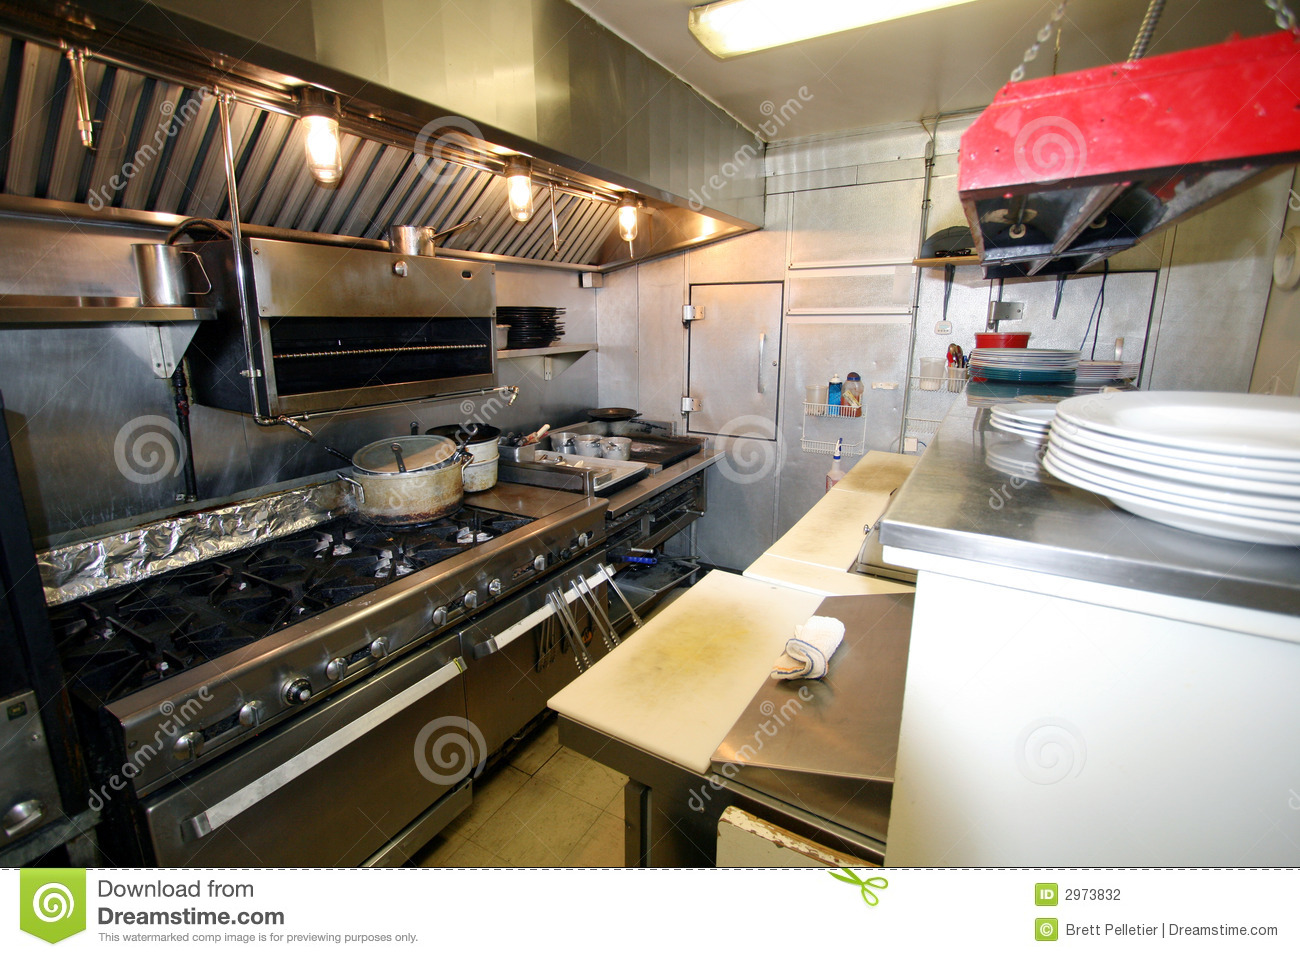 Small Kitchen In A Restaurant Stock Photo Image Of Pans Fine 2973832